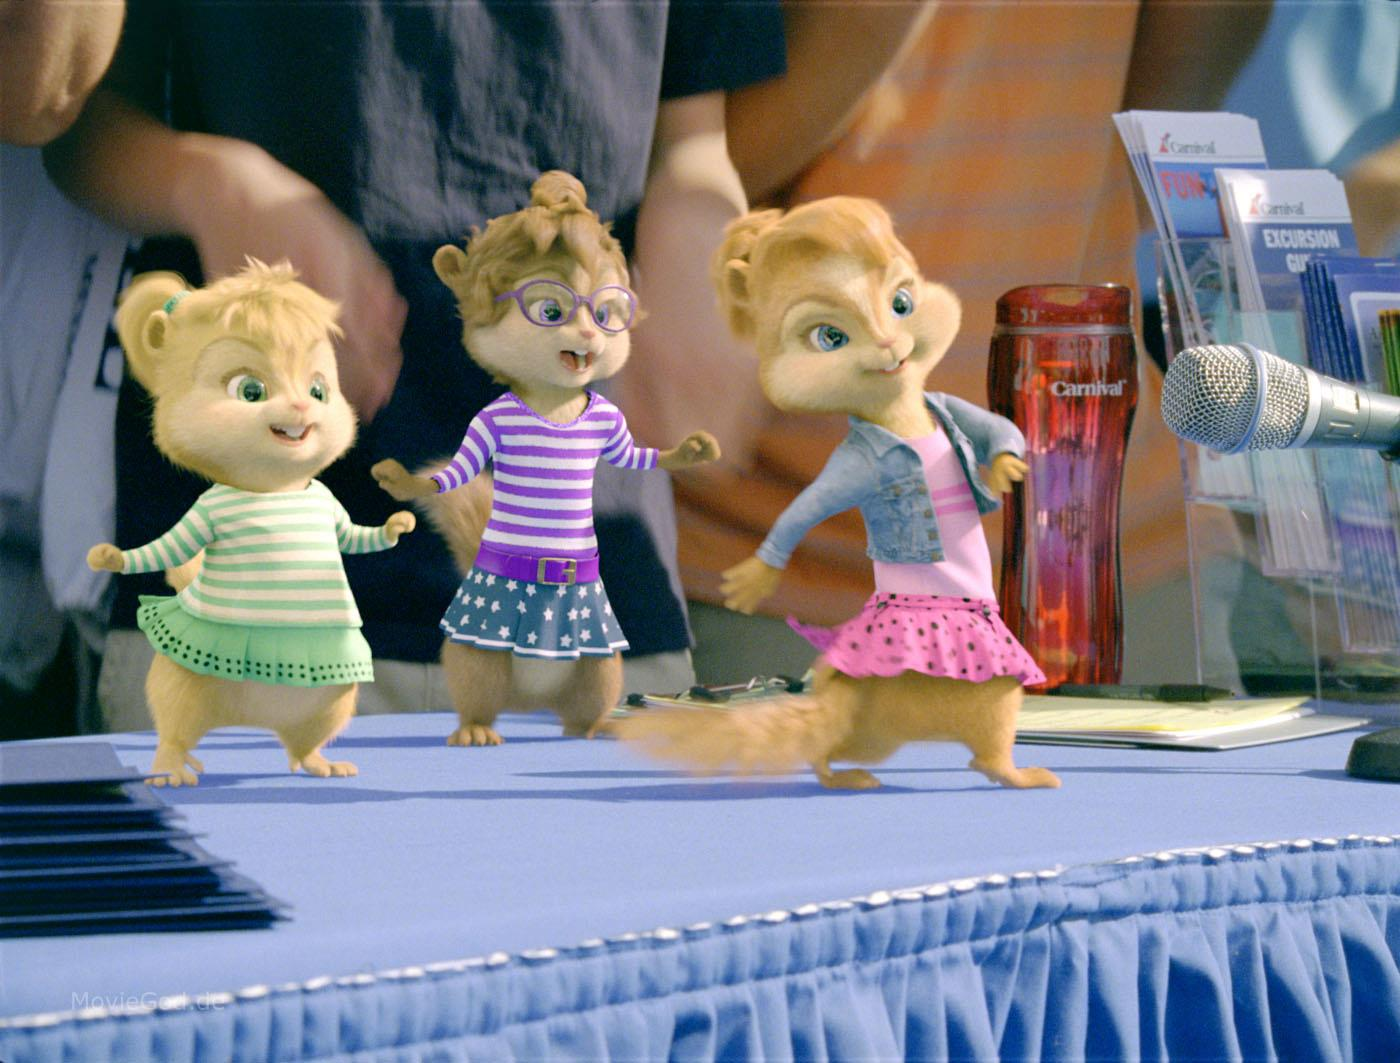 Alvin And The Chipmunks 3 Images chip-wrecked trailer screenshots - alvin and the chipmunks 3